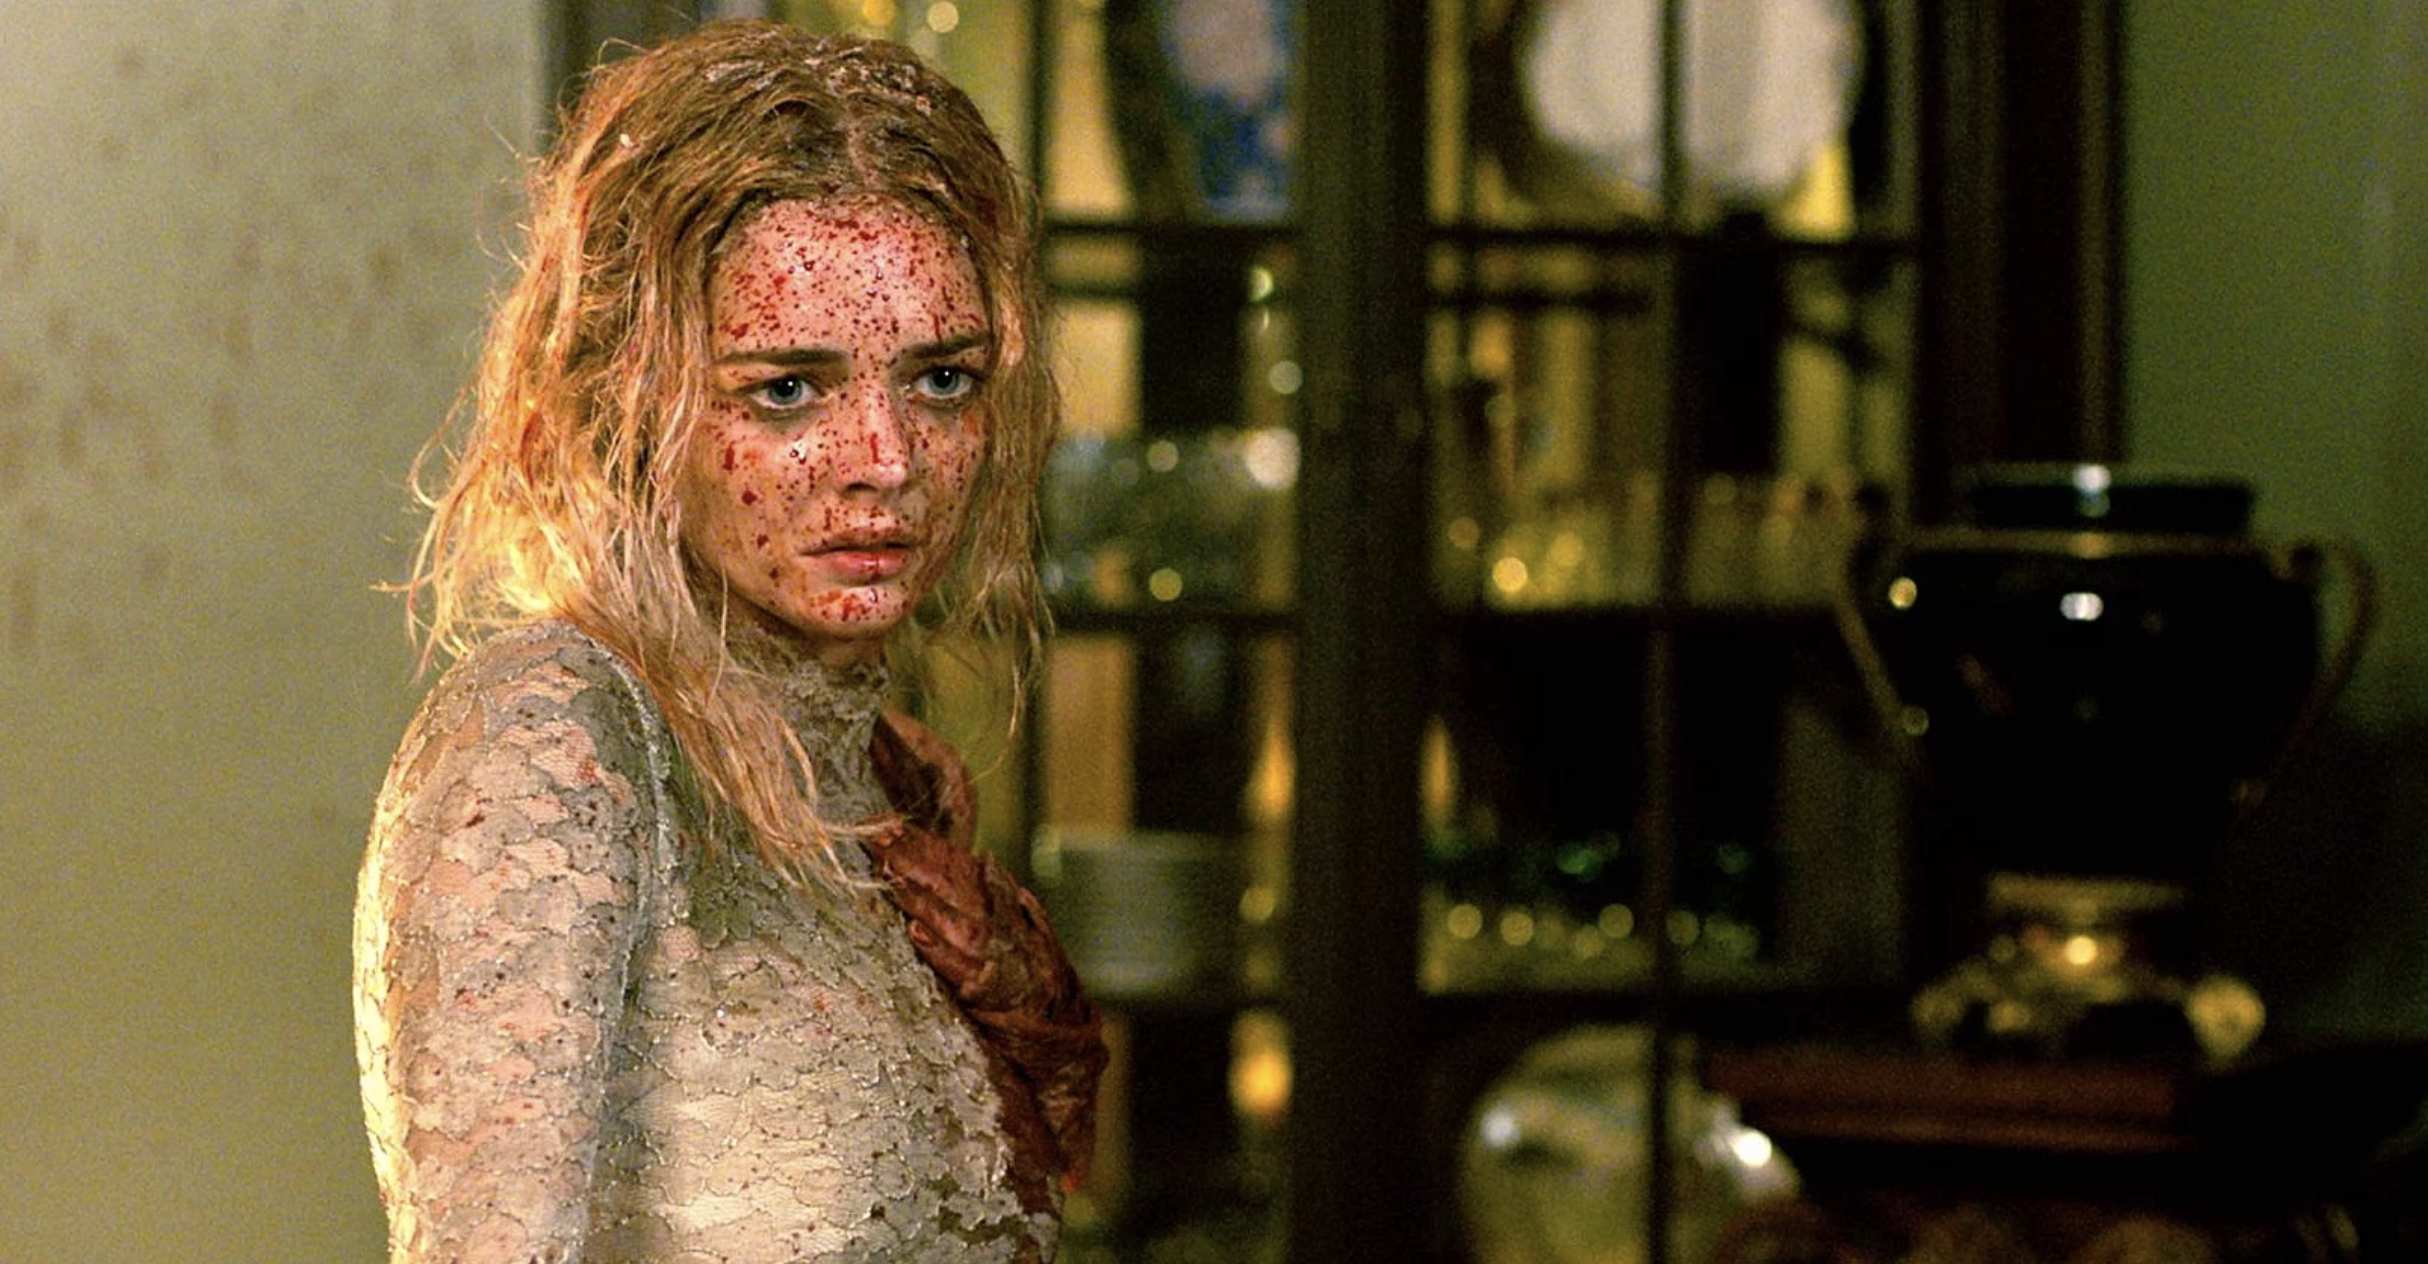 A woman wearing a wedding dress is spattered with blood, she holds her hand over her heart and looks sad